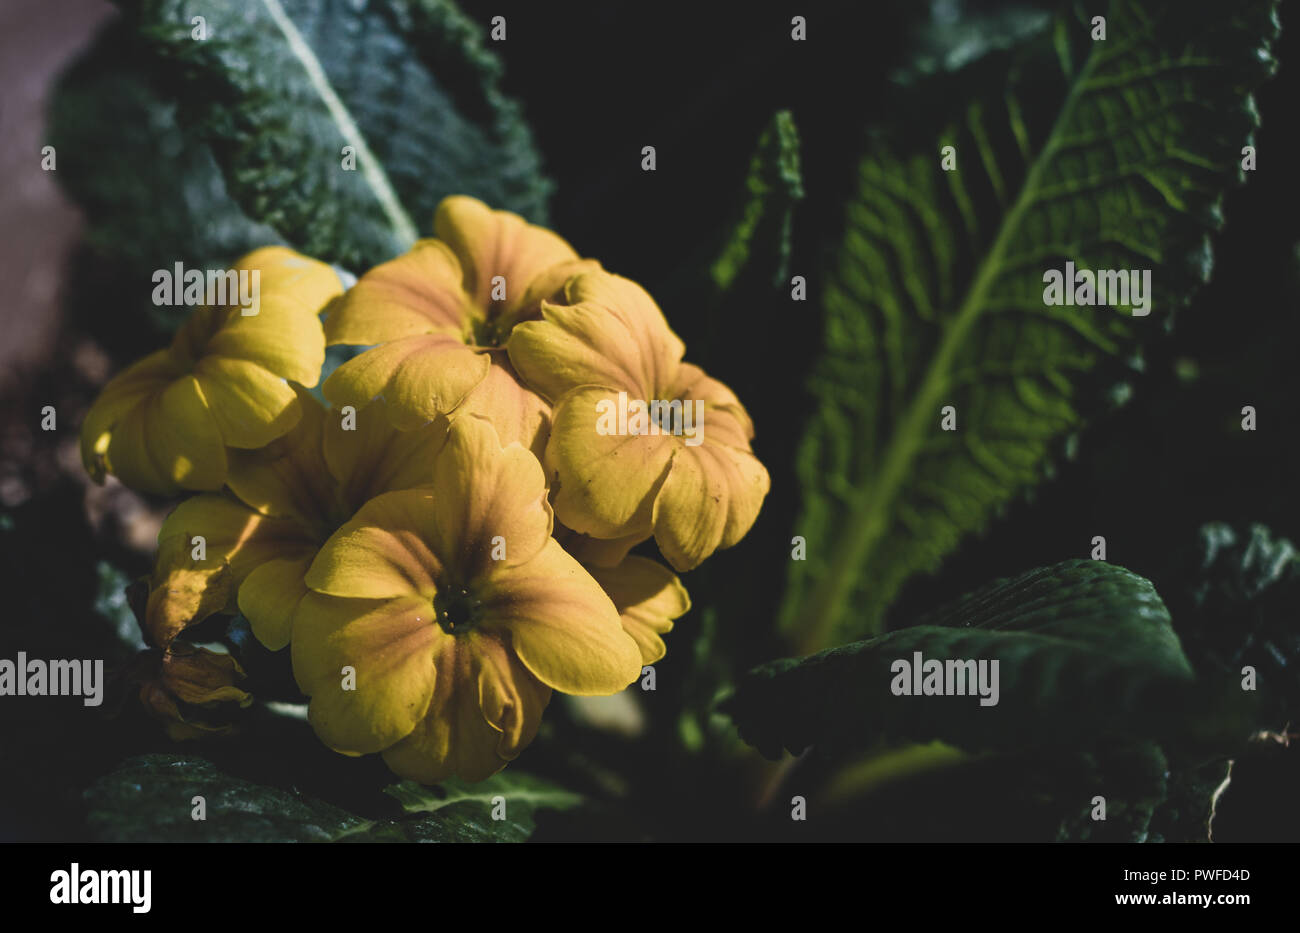 Yellow flowers cropped with muted tones and green leaves and fine detail - Stock Image